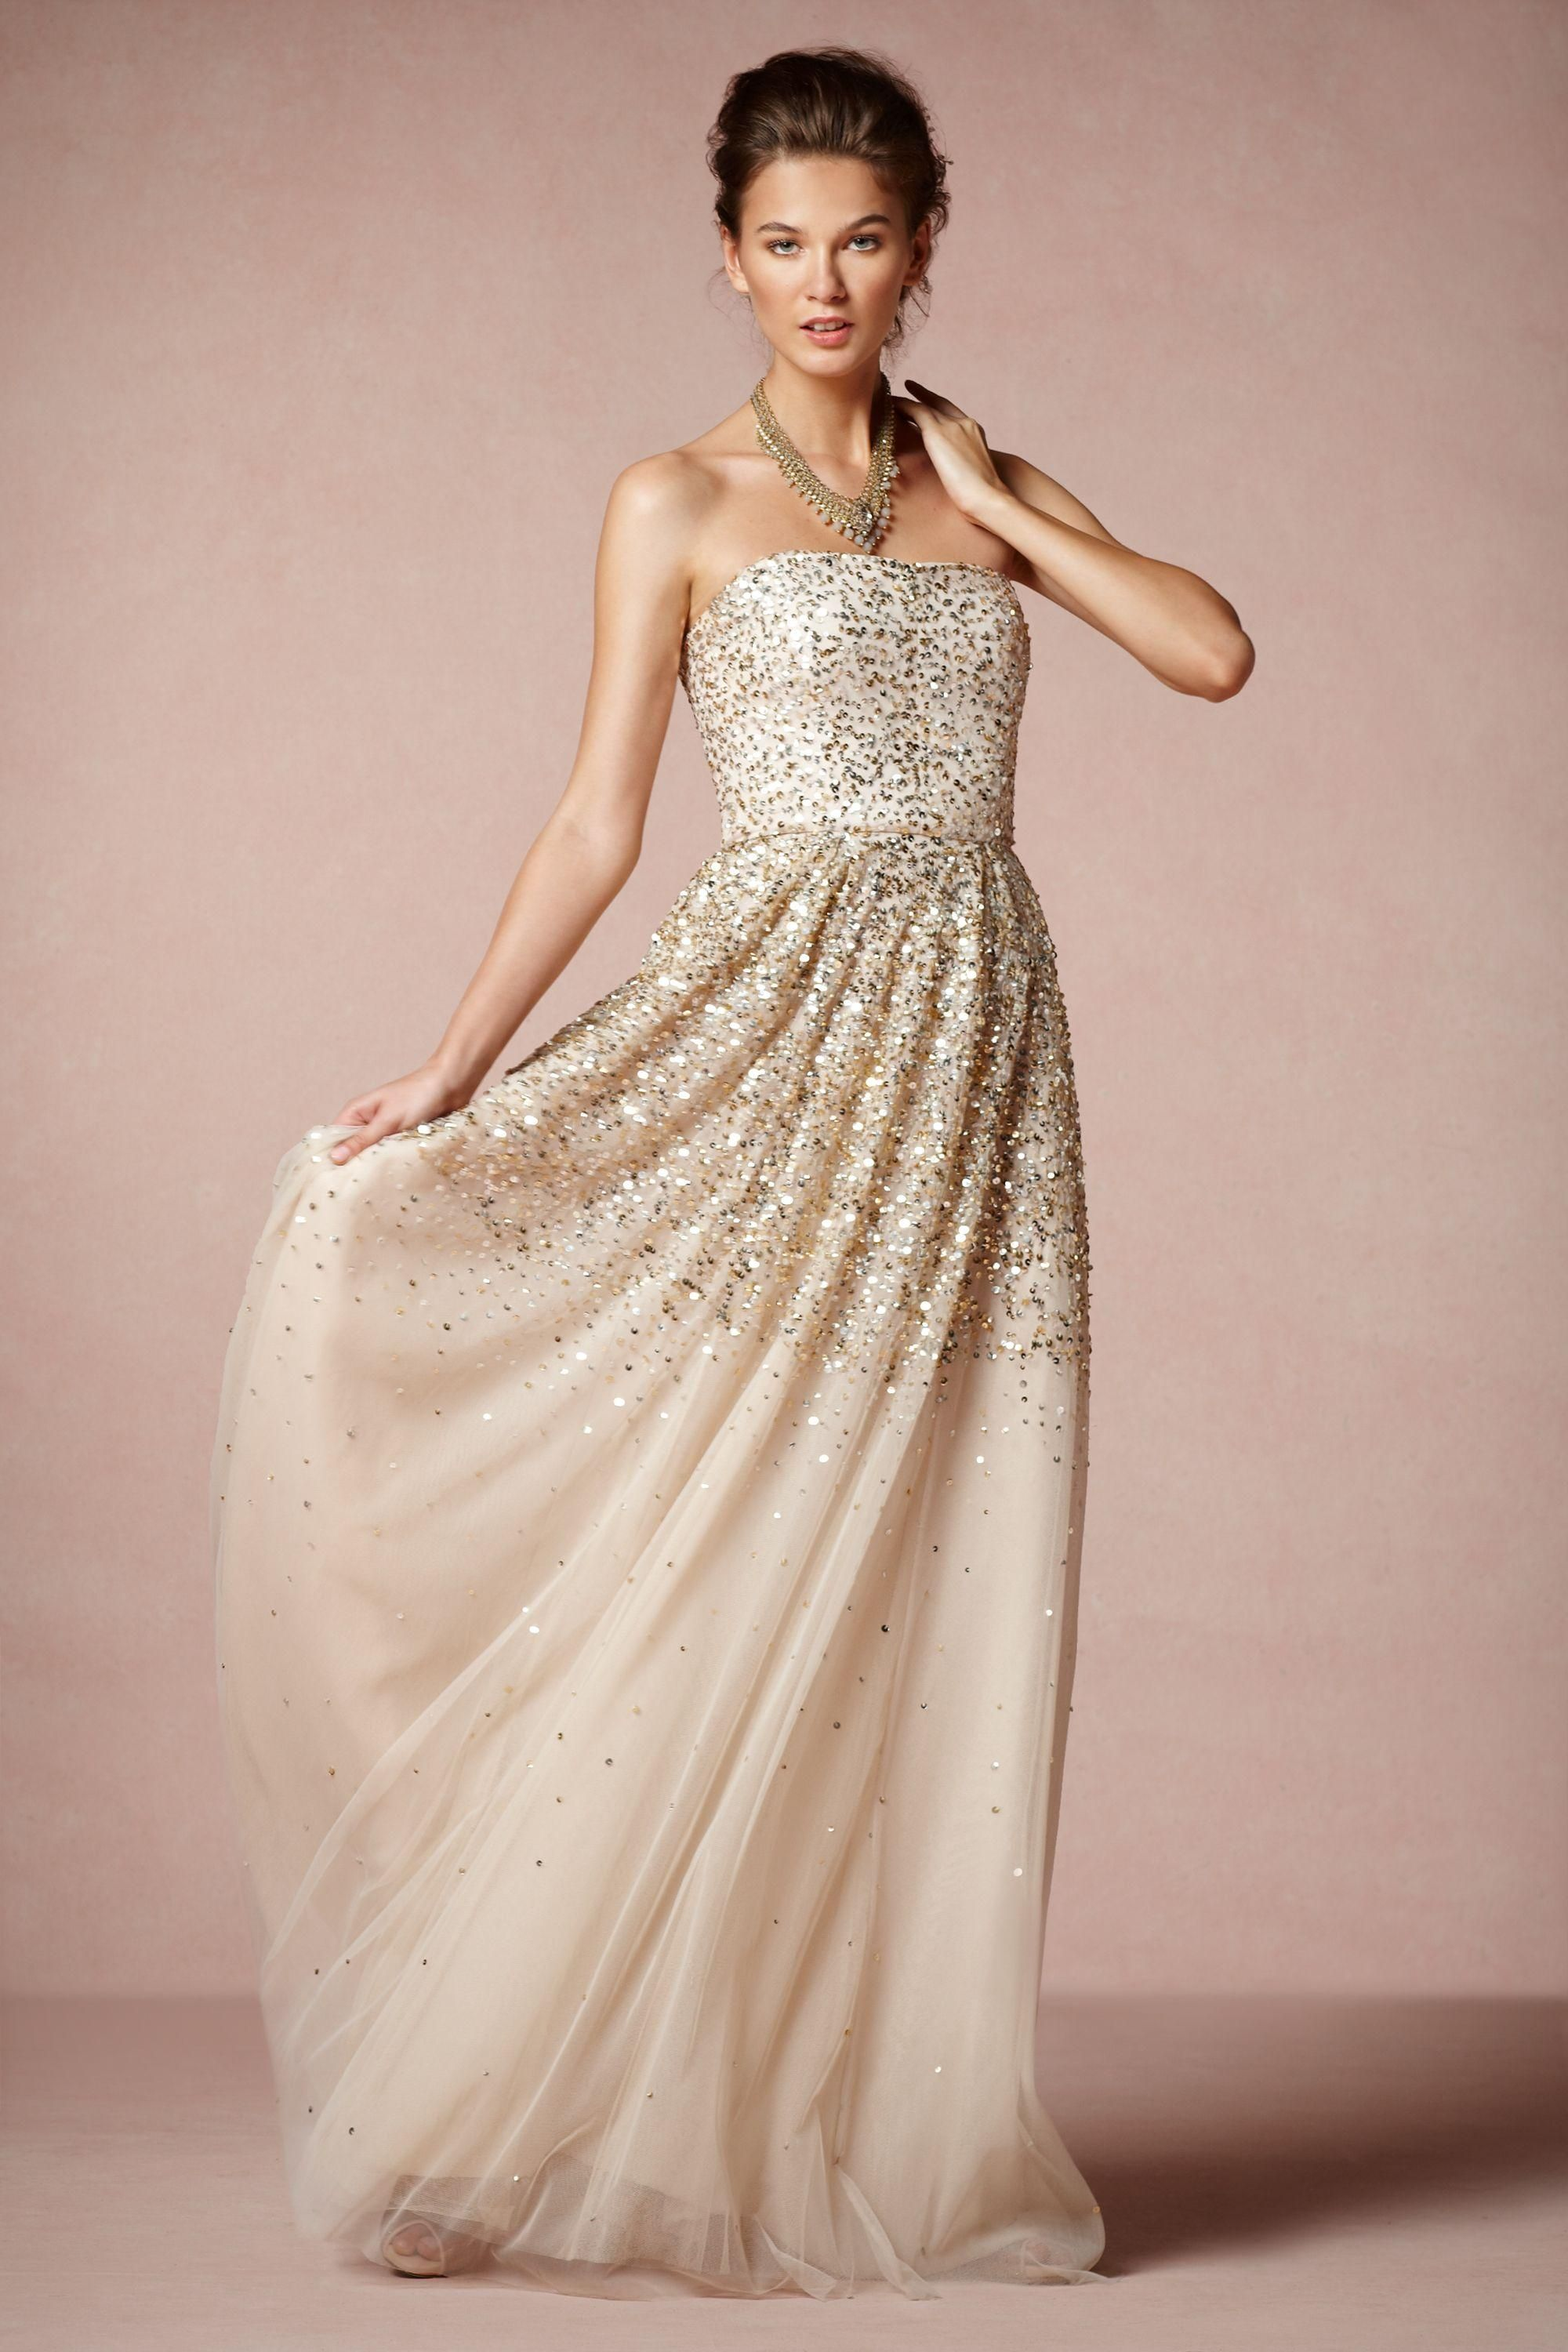 Pin by ashley rescorla on pretty pinterest gowns champagne and